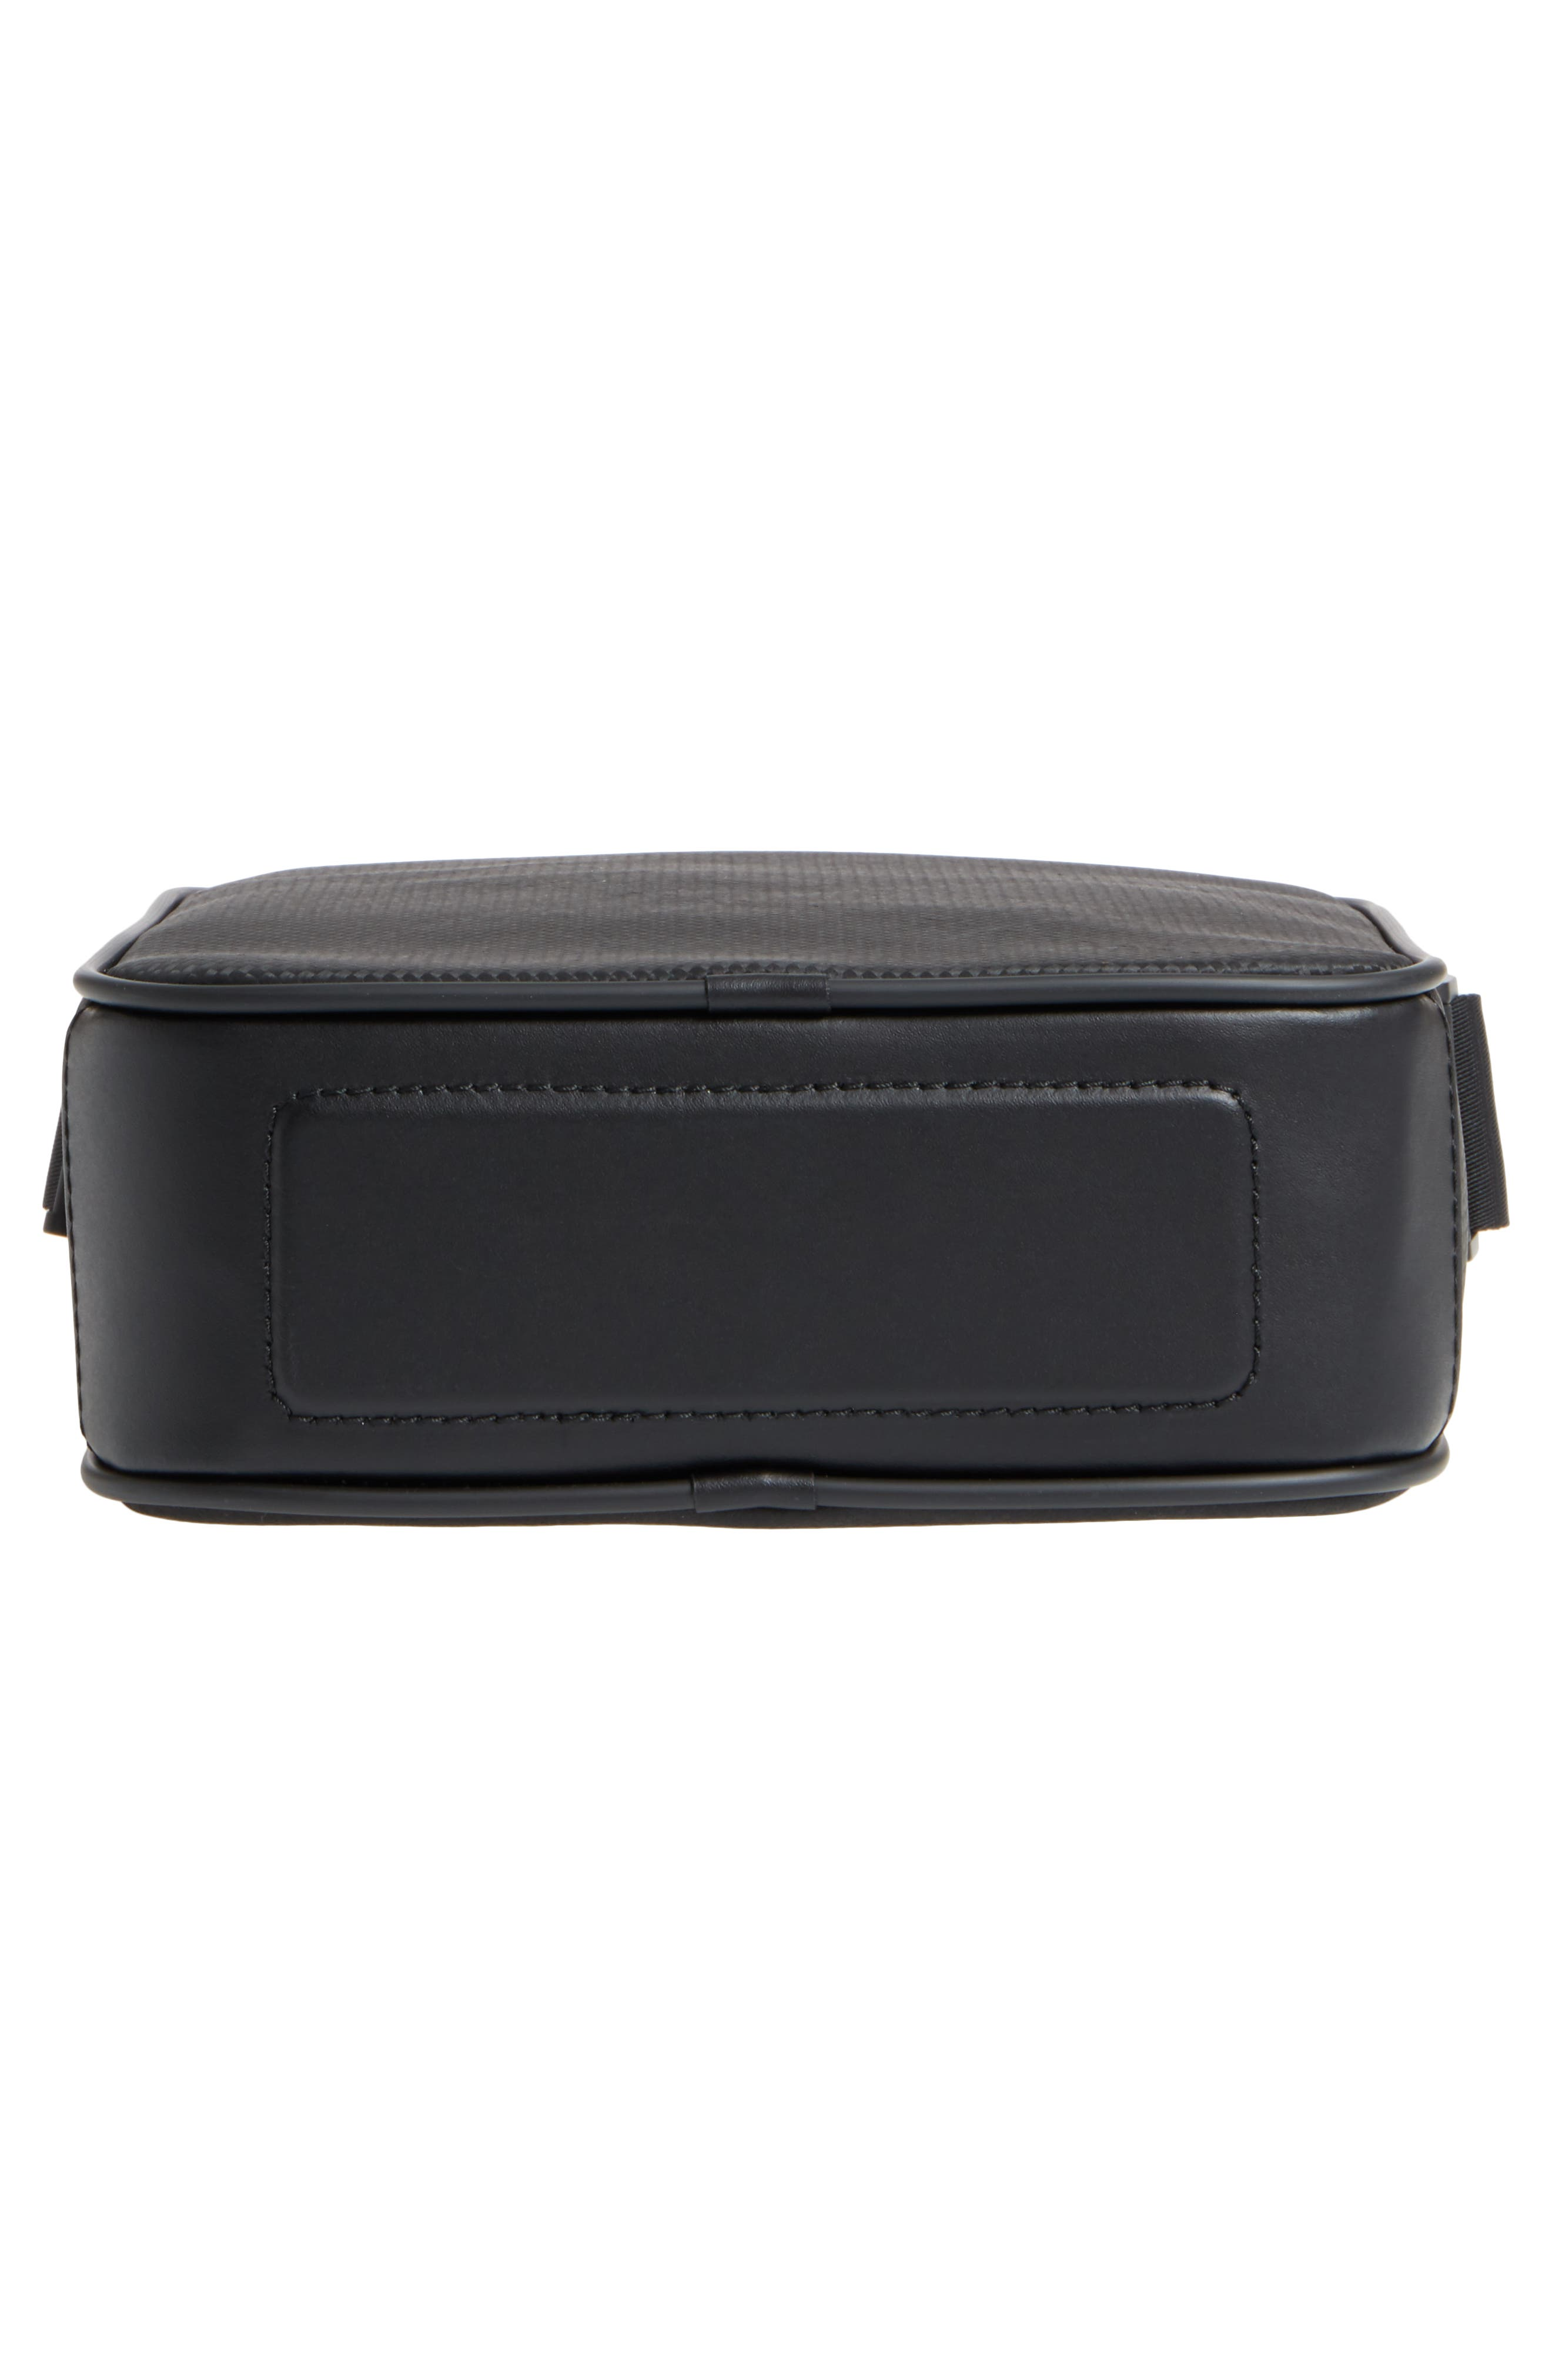 Extreme Reporter Leather Bag,                             Alternate thumbnail 6, color,                             Black